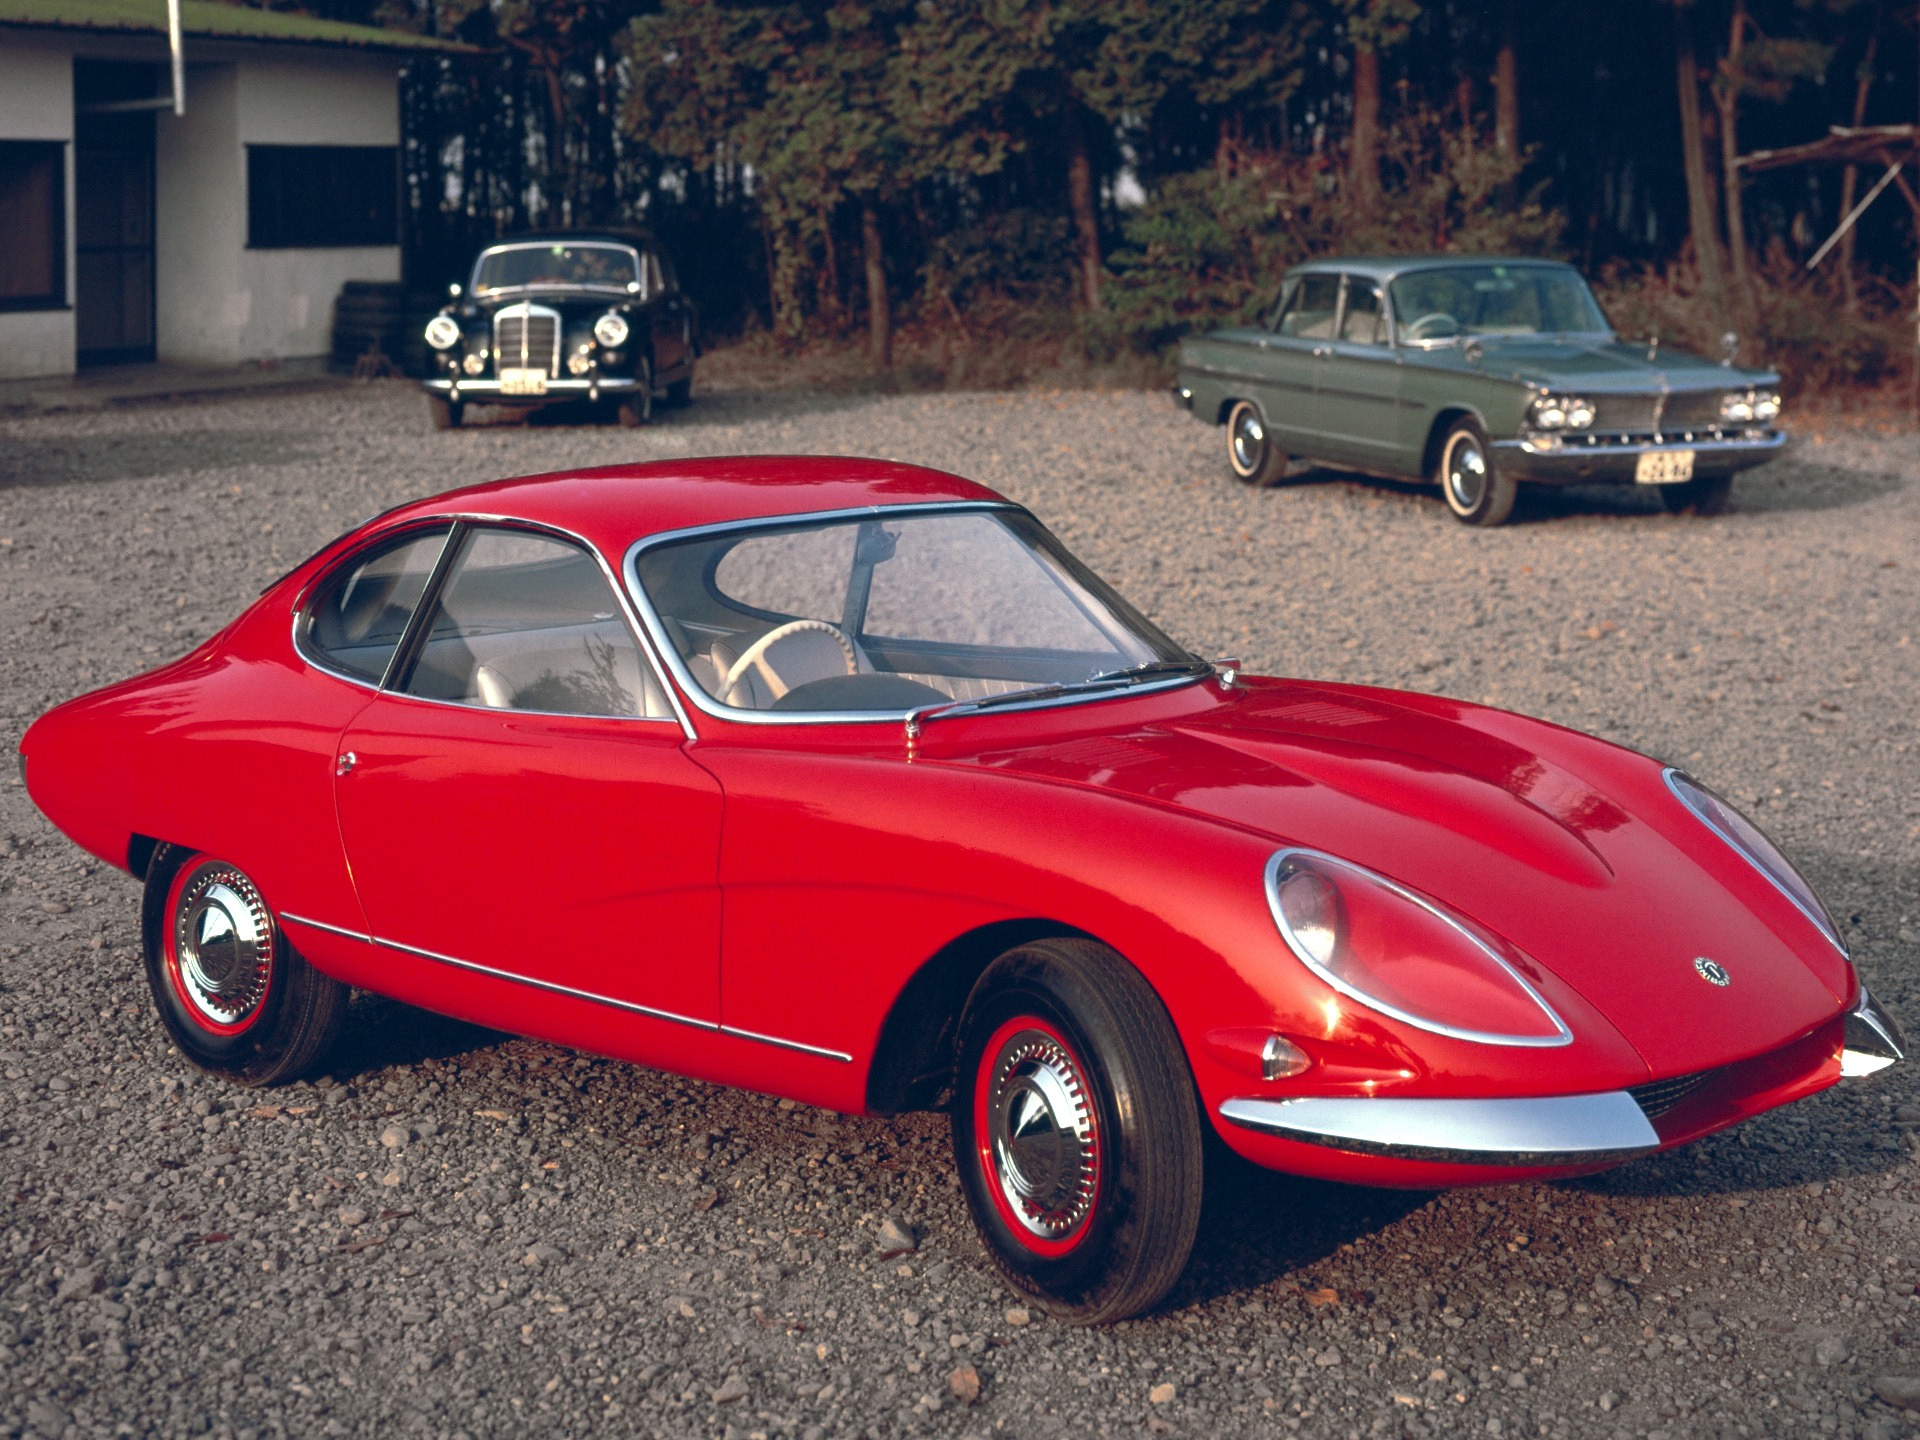 Nissan Prince Sprint 1900 (1963) – Old Concept Cars